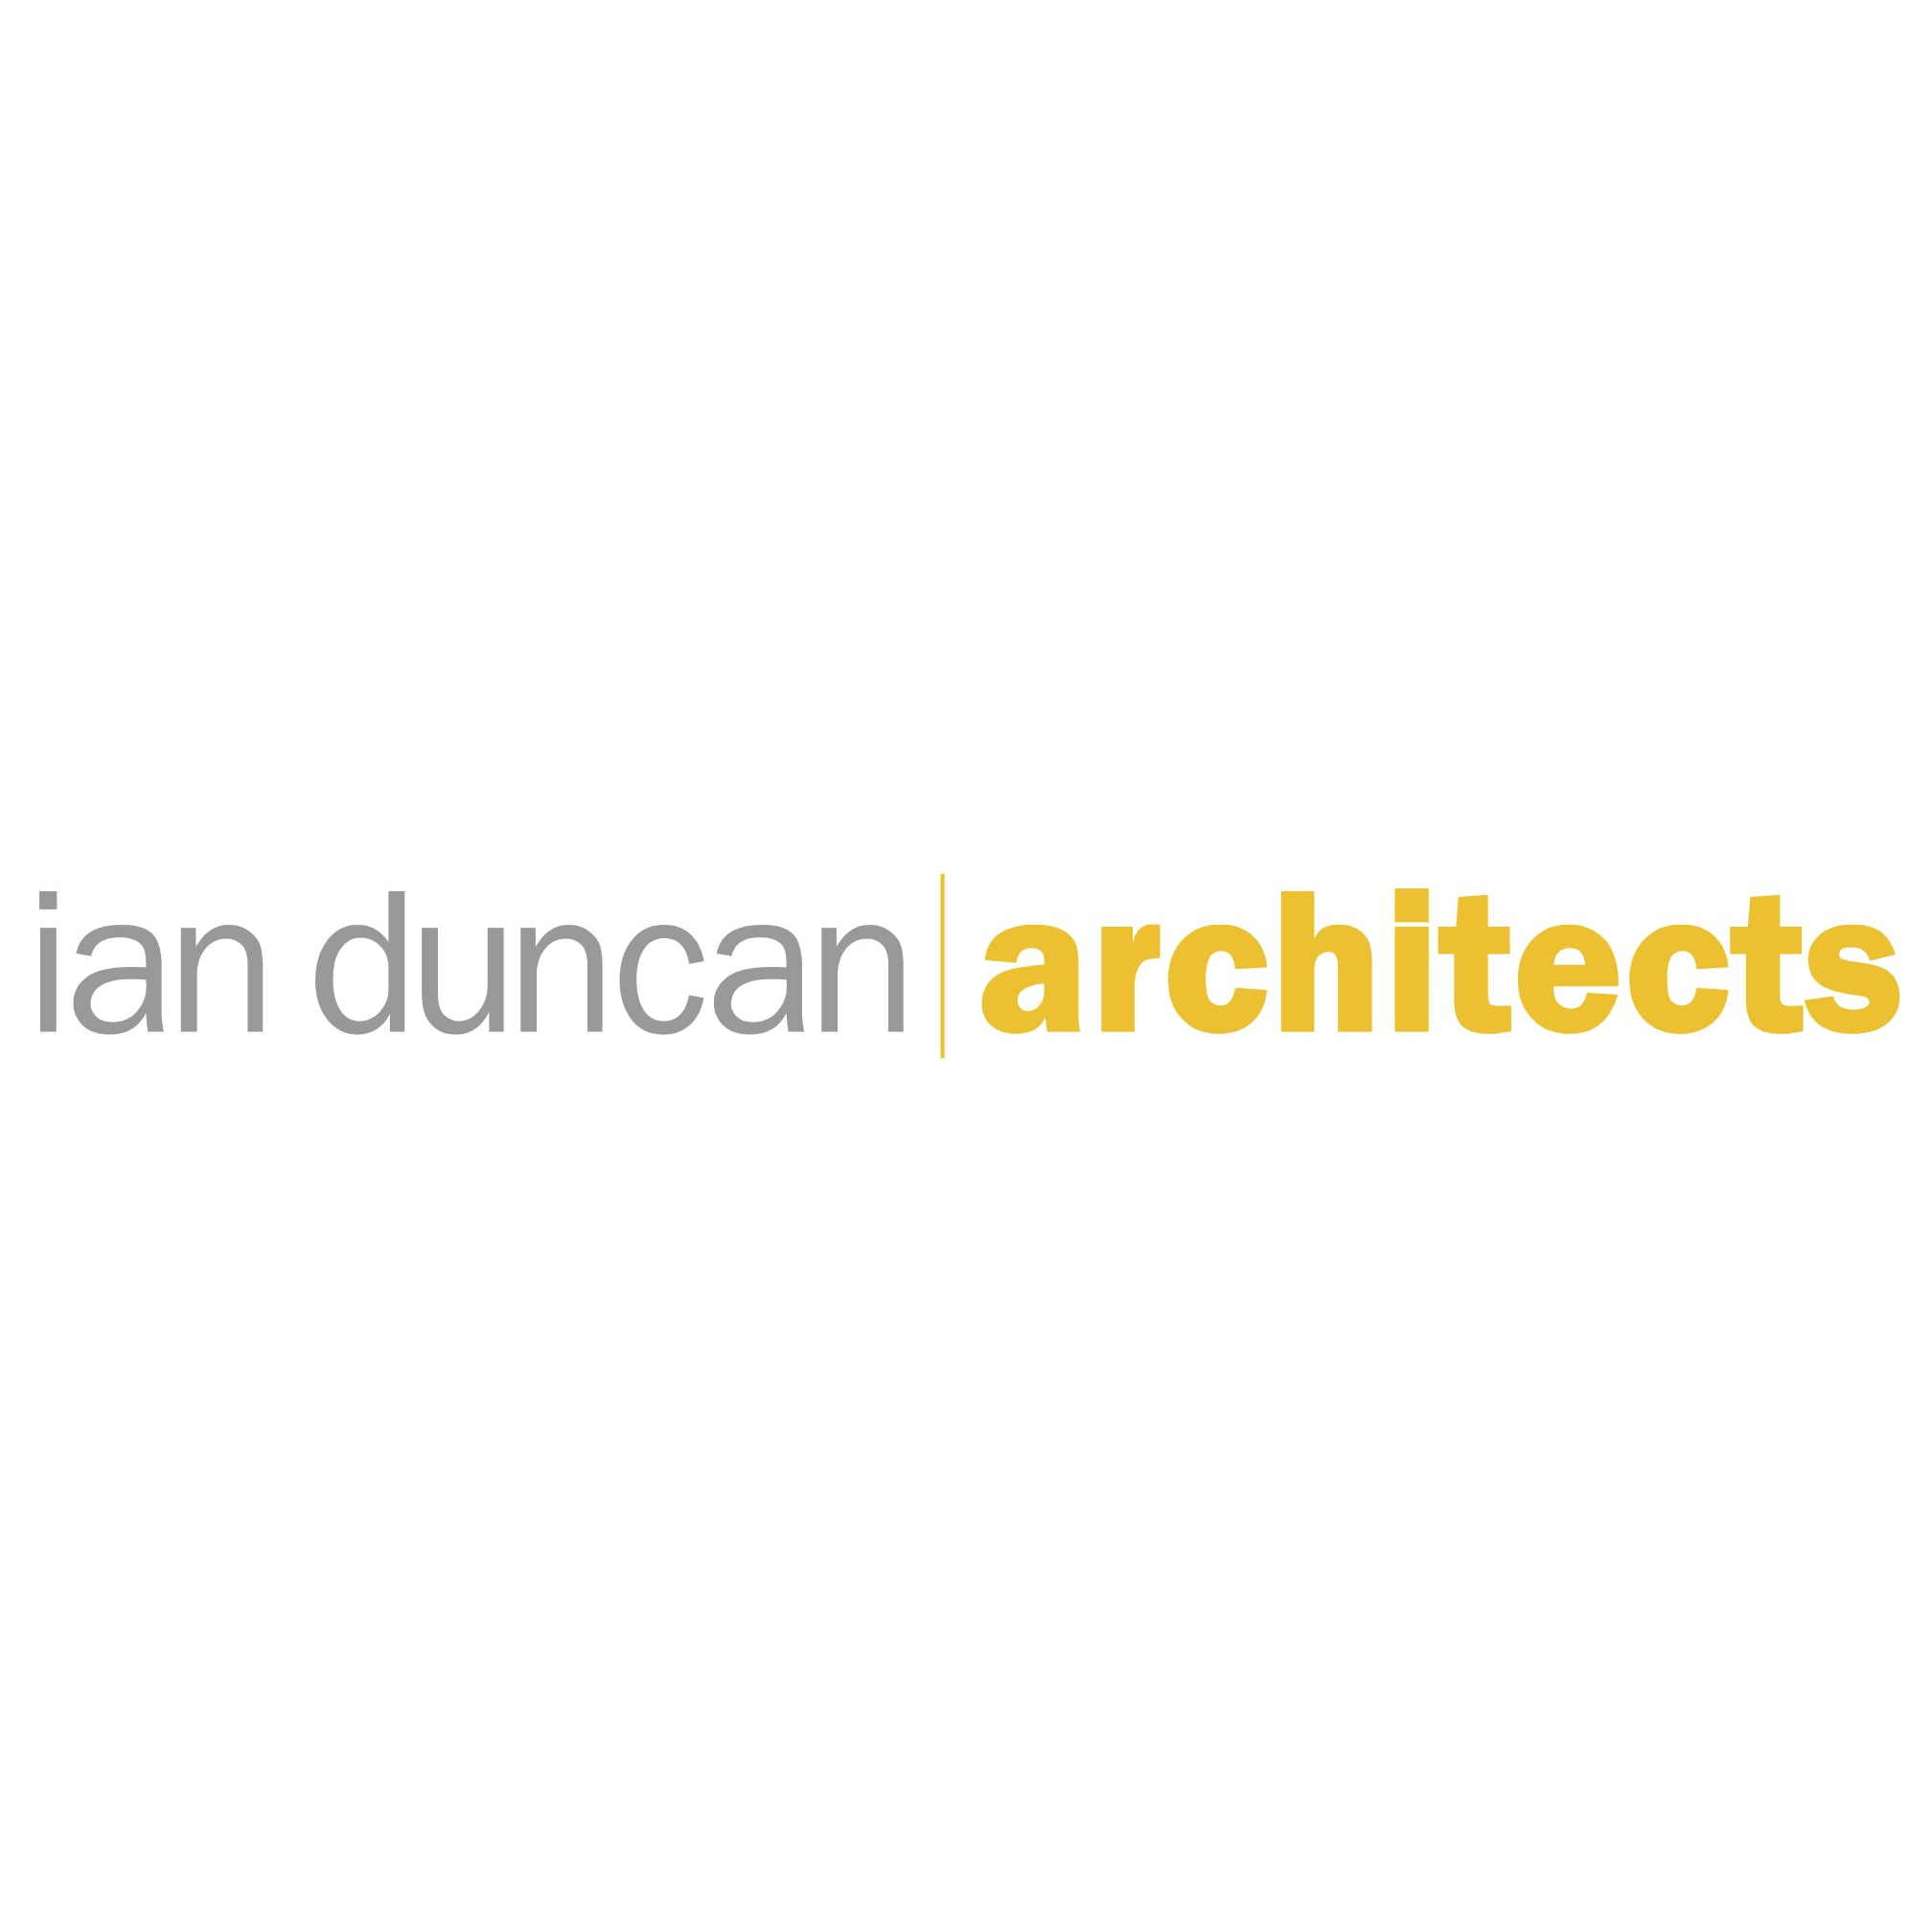 Ian Duncan Architects - Inverurie, Aberdeenshire AB51 3PU - 01467 625500 | ShowMeLocal.com